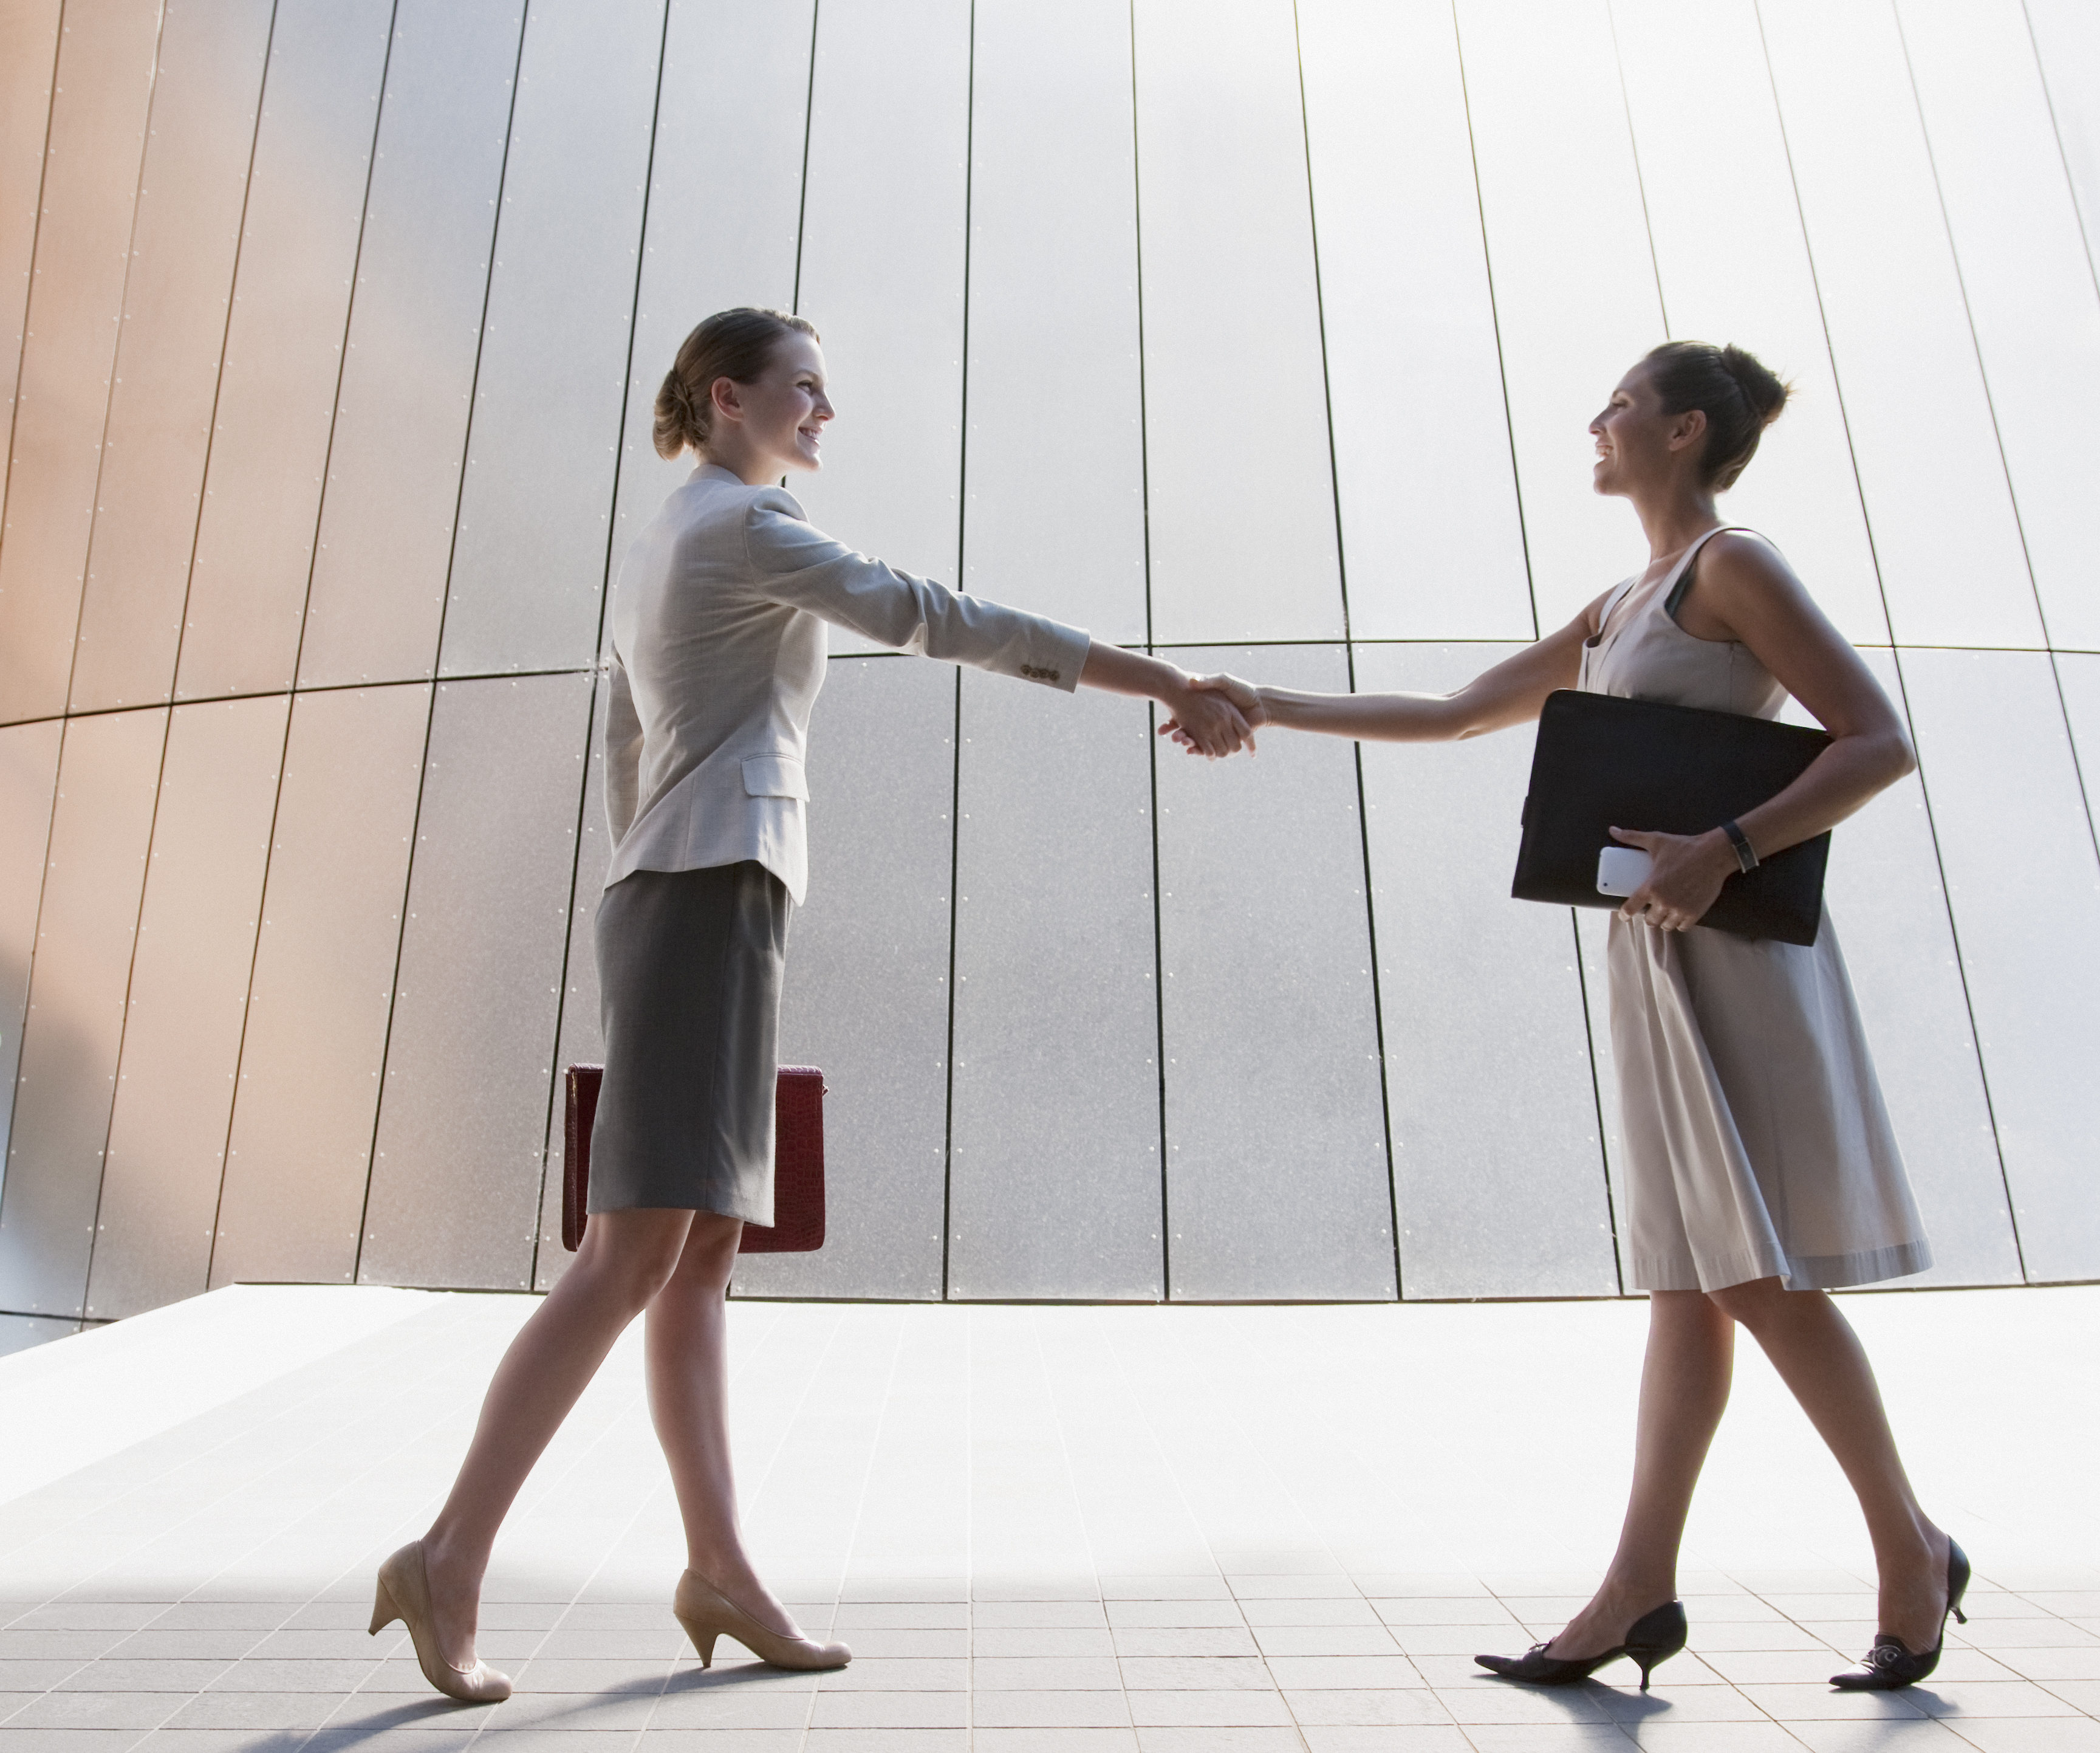 Ask Ms. Plaid: Does Going into Business with a Friend Ever Work?